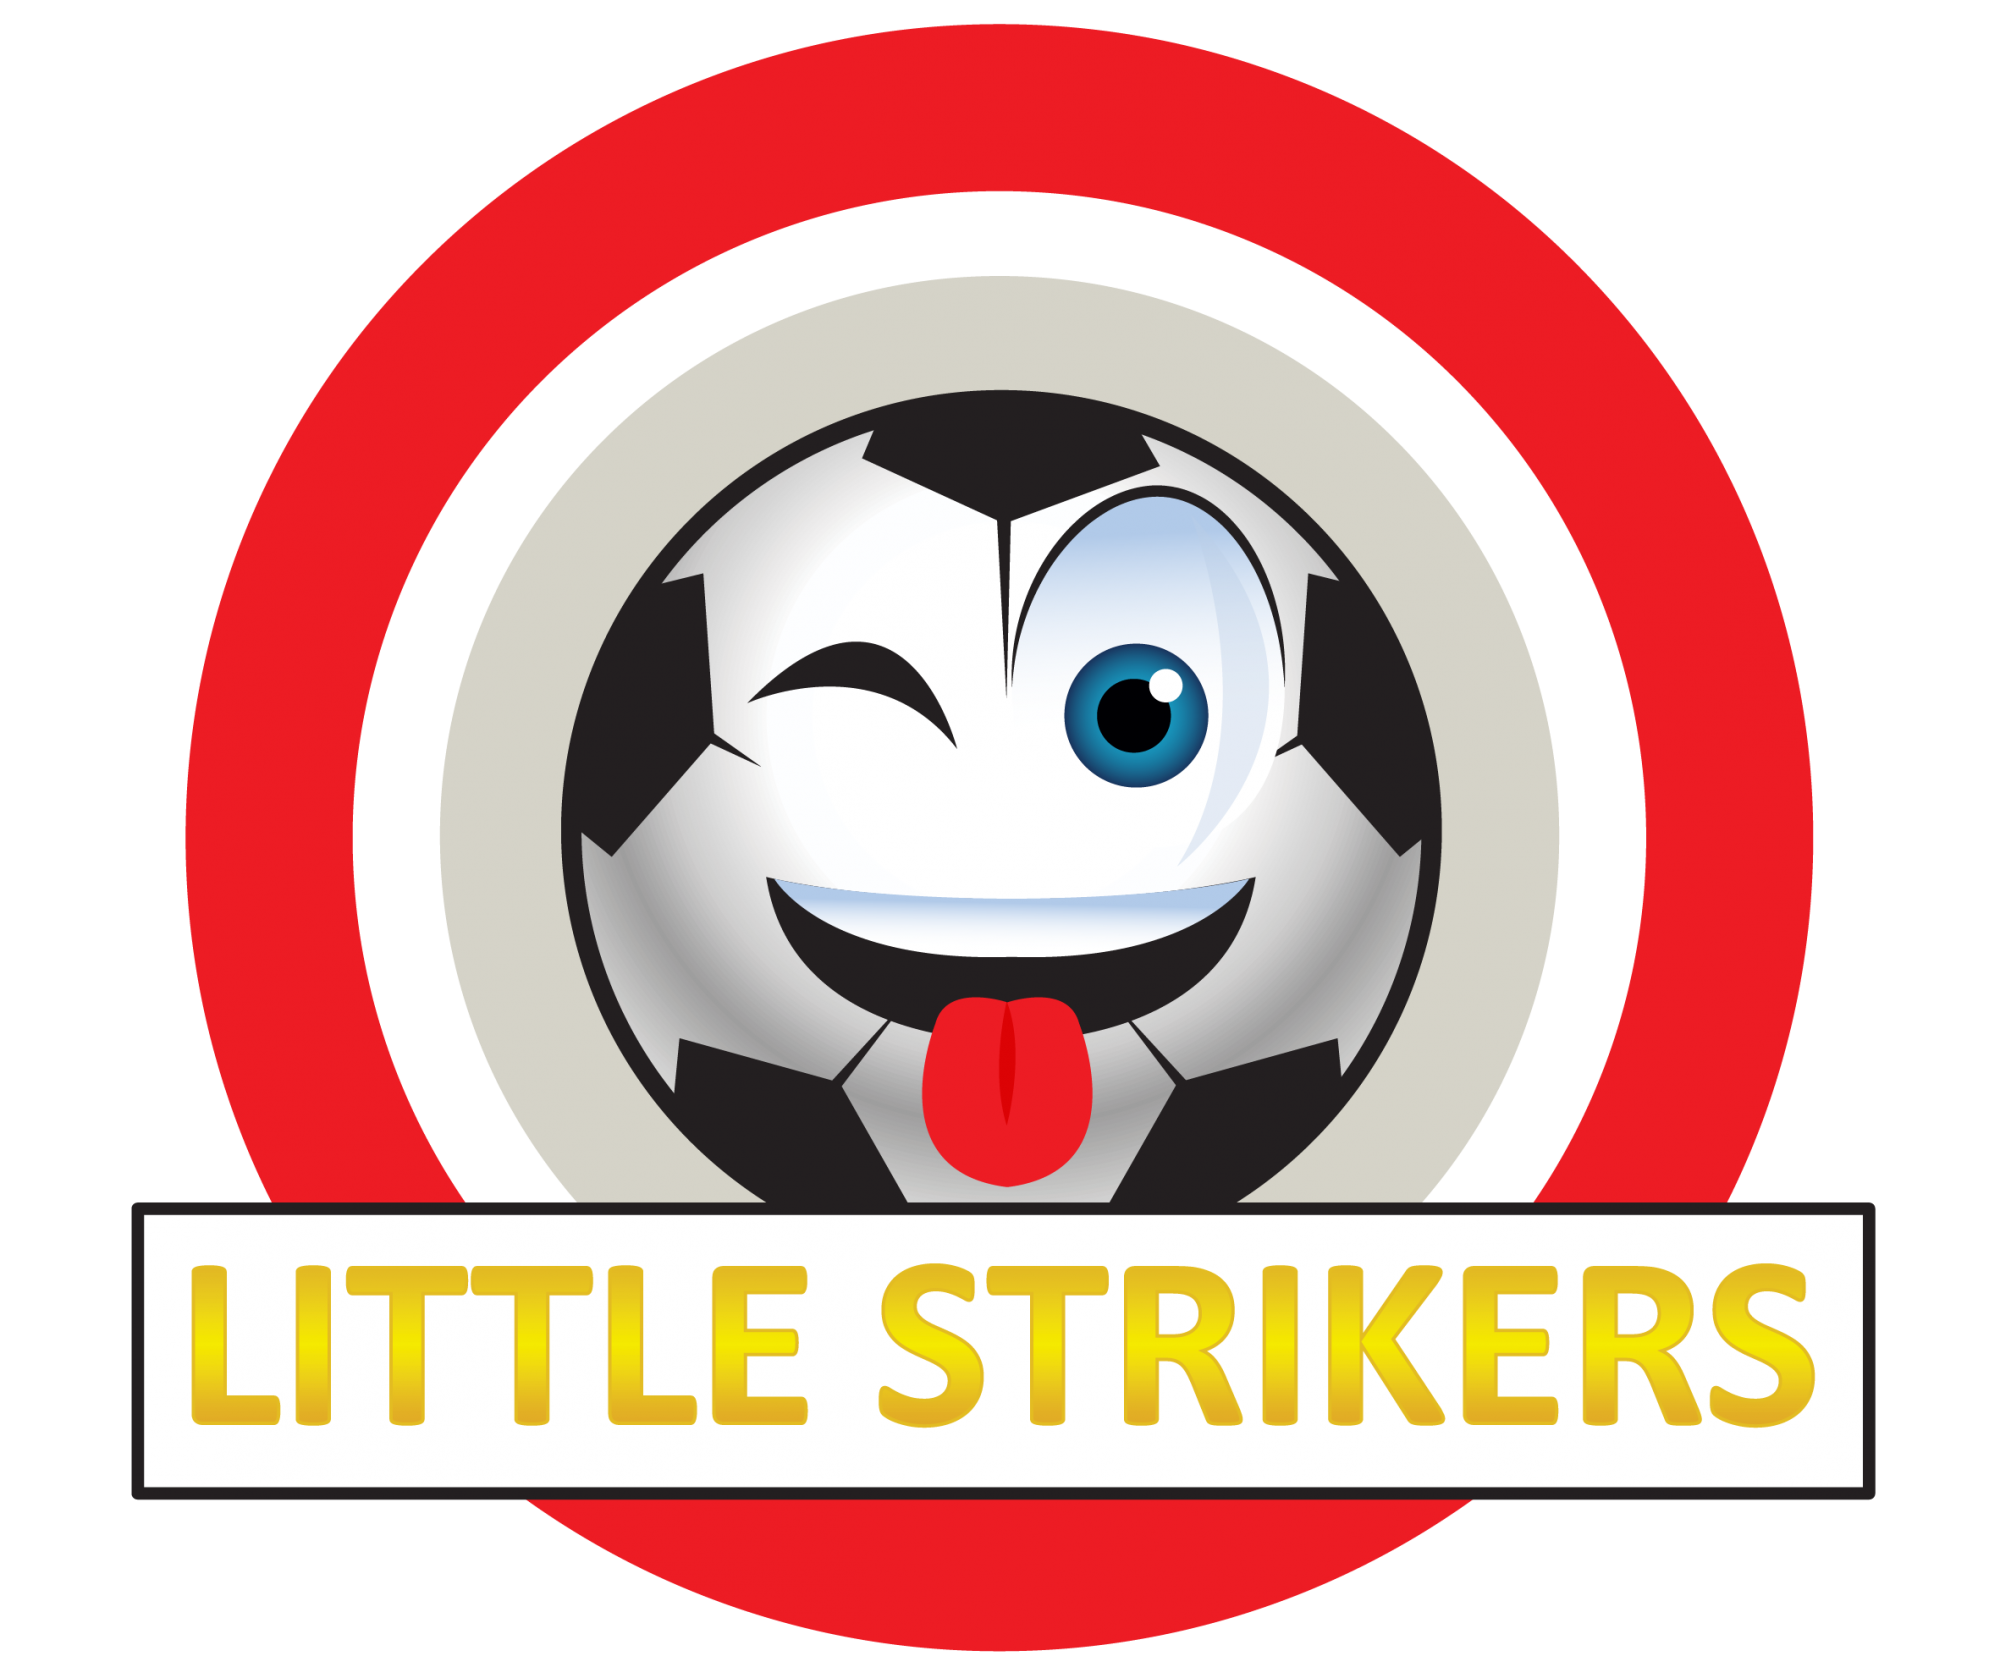 Little Strikers